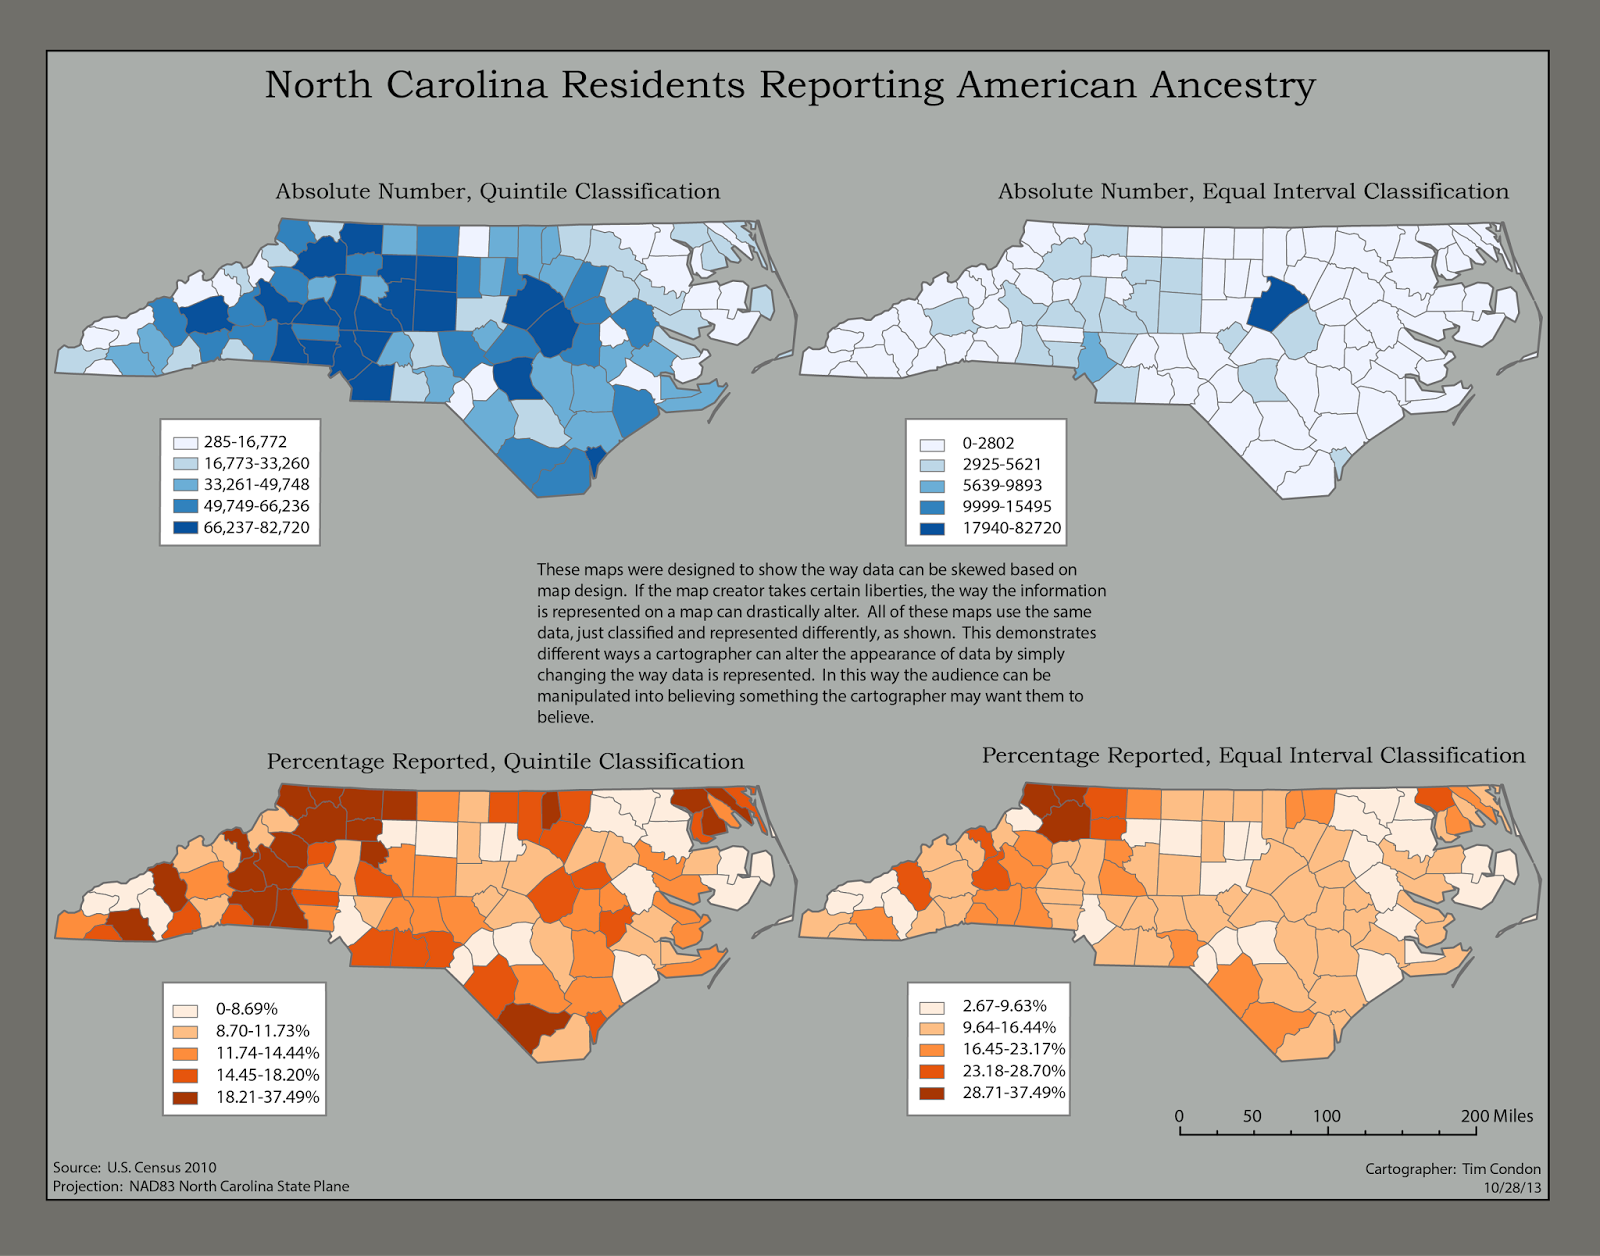 this is a map showing the location of north carolina residents reporting american ancestry and the various ways data can be reported and classified in a